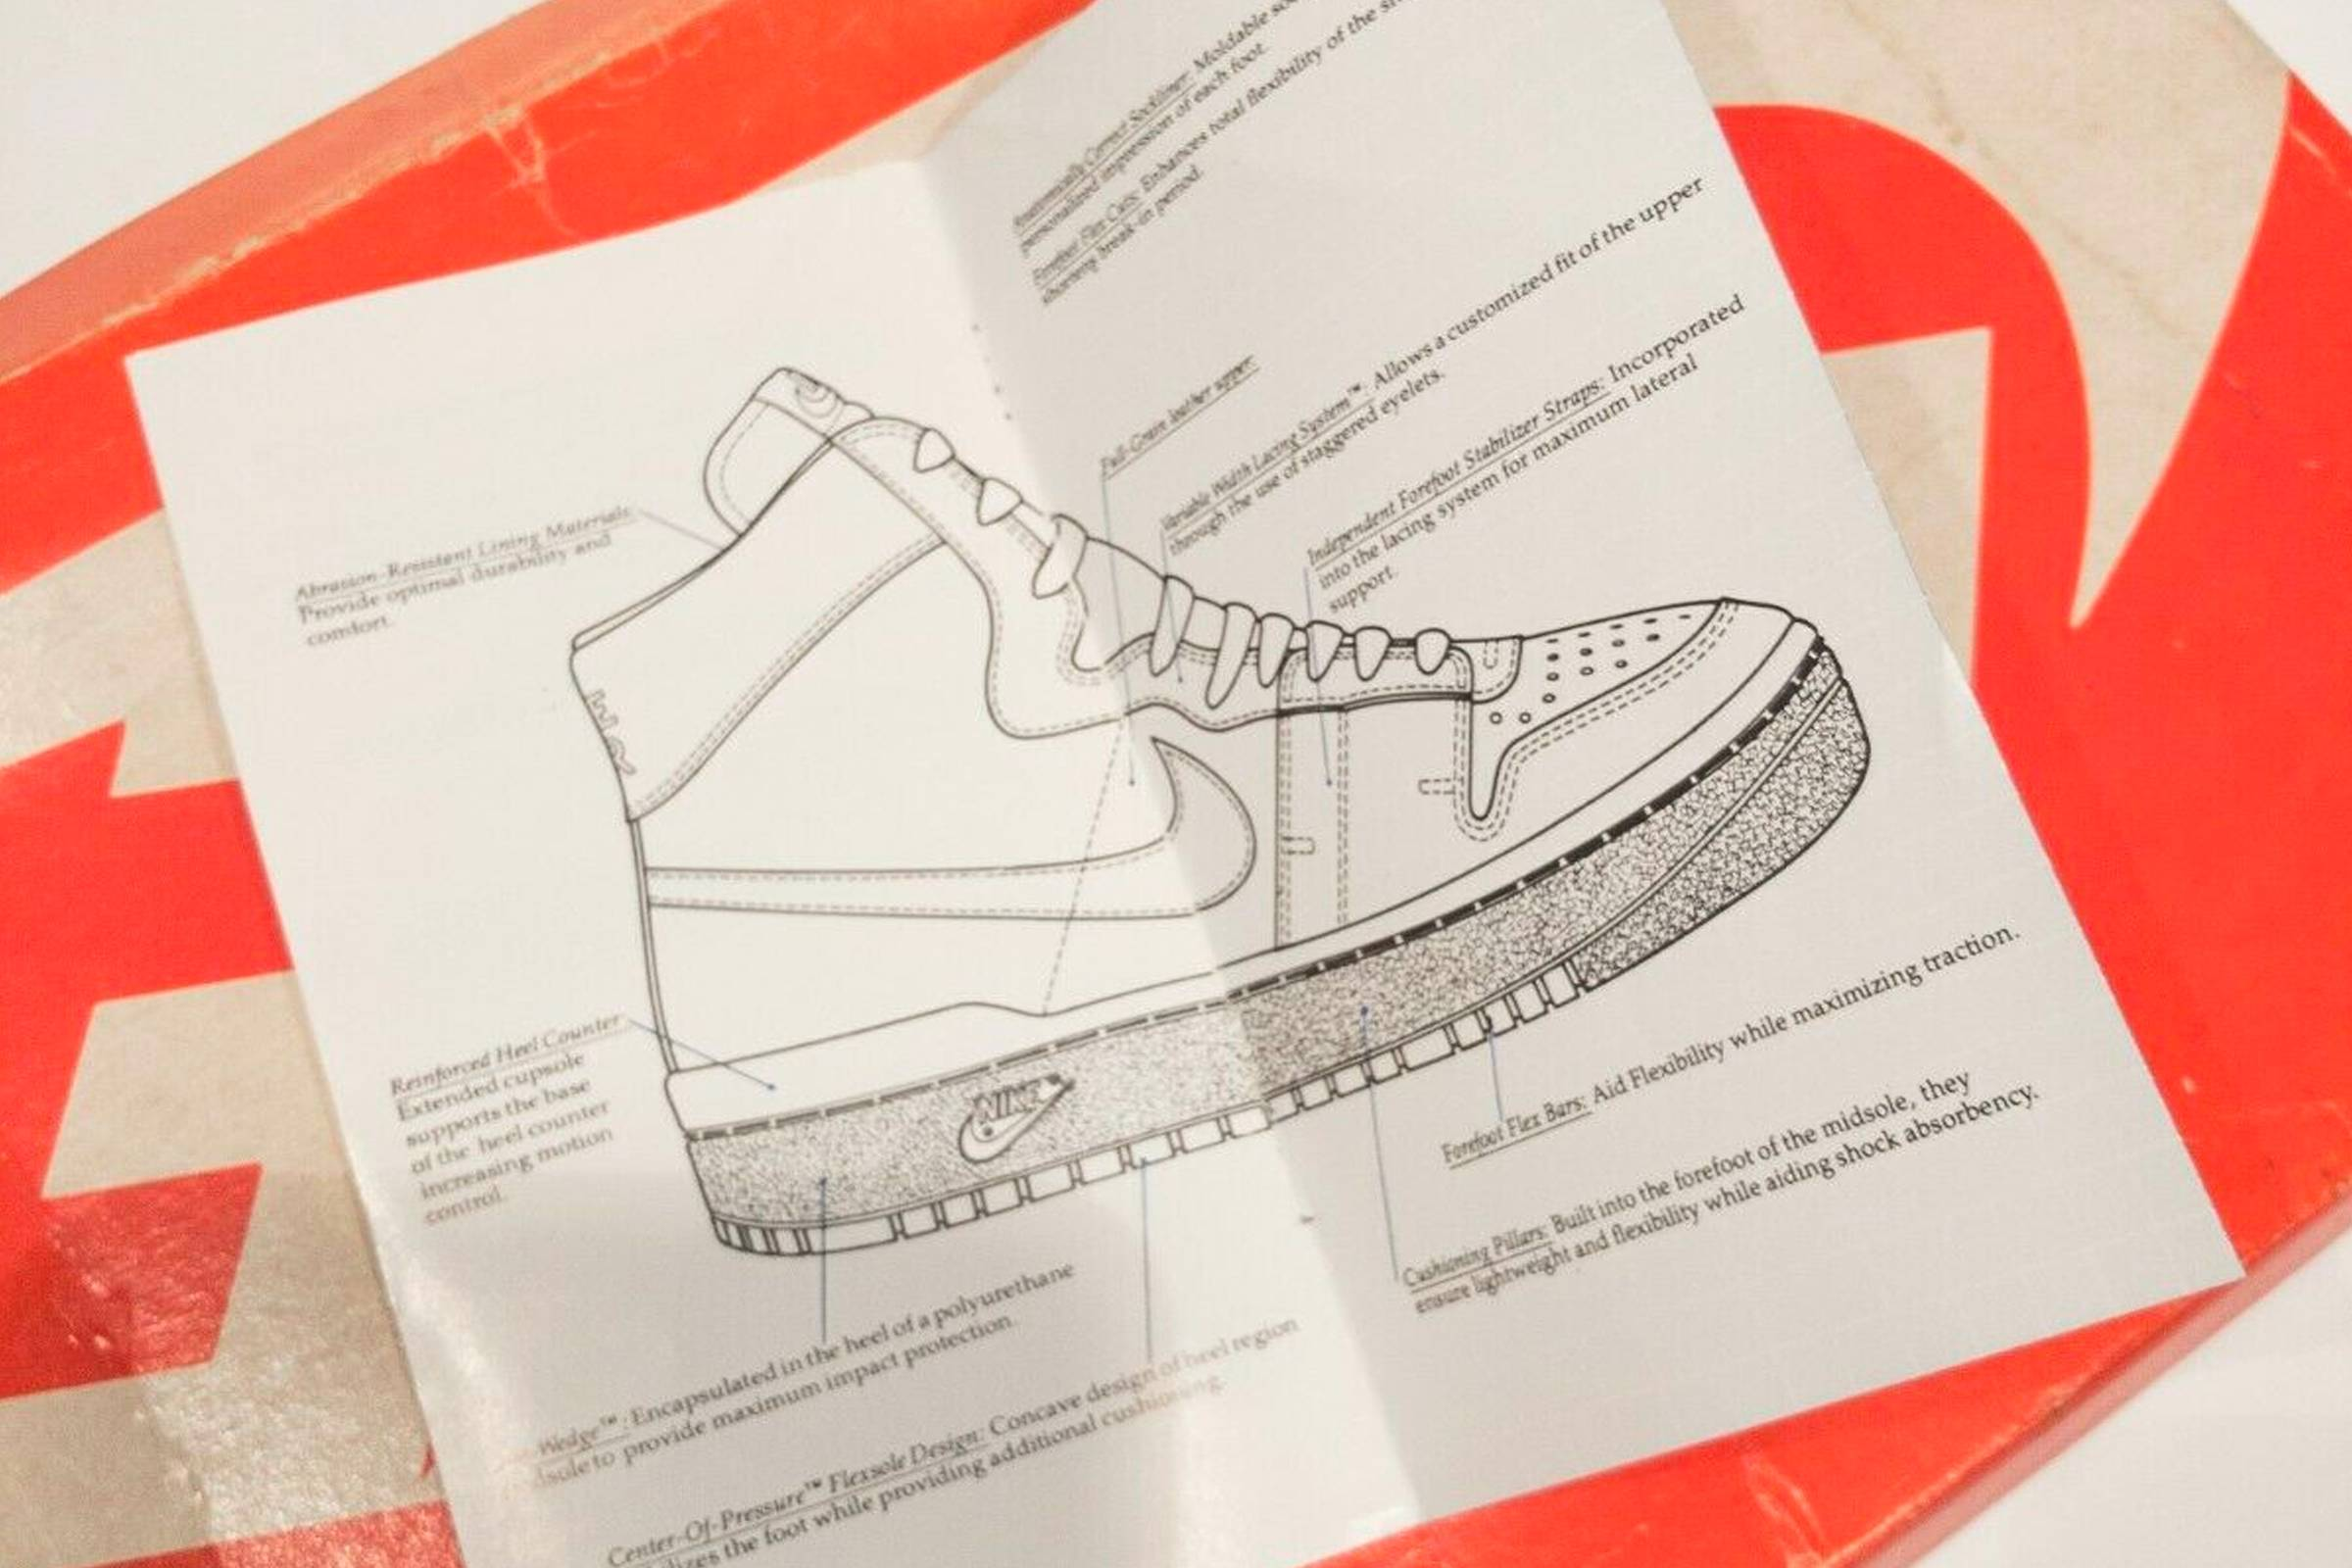 Diagram of the Nike Air Ship's product features, found in supplemental materials included with the sneaker.